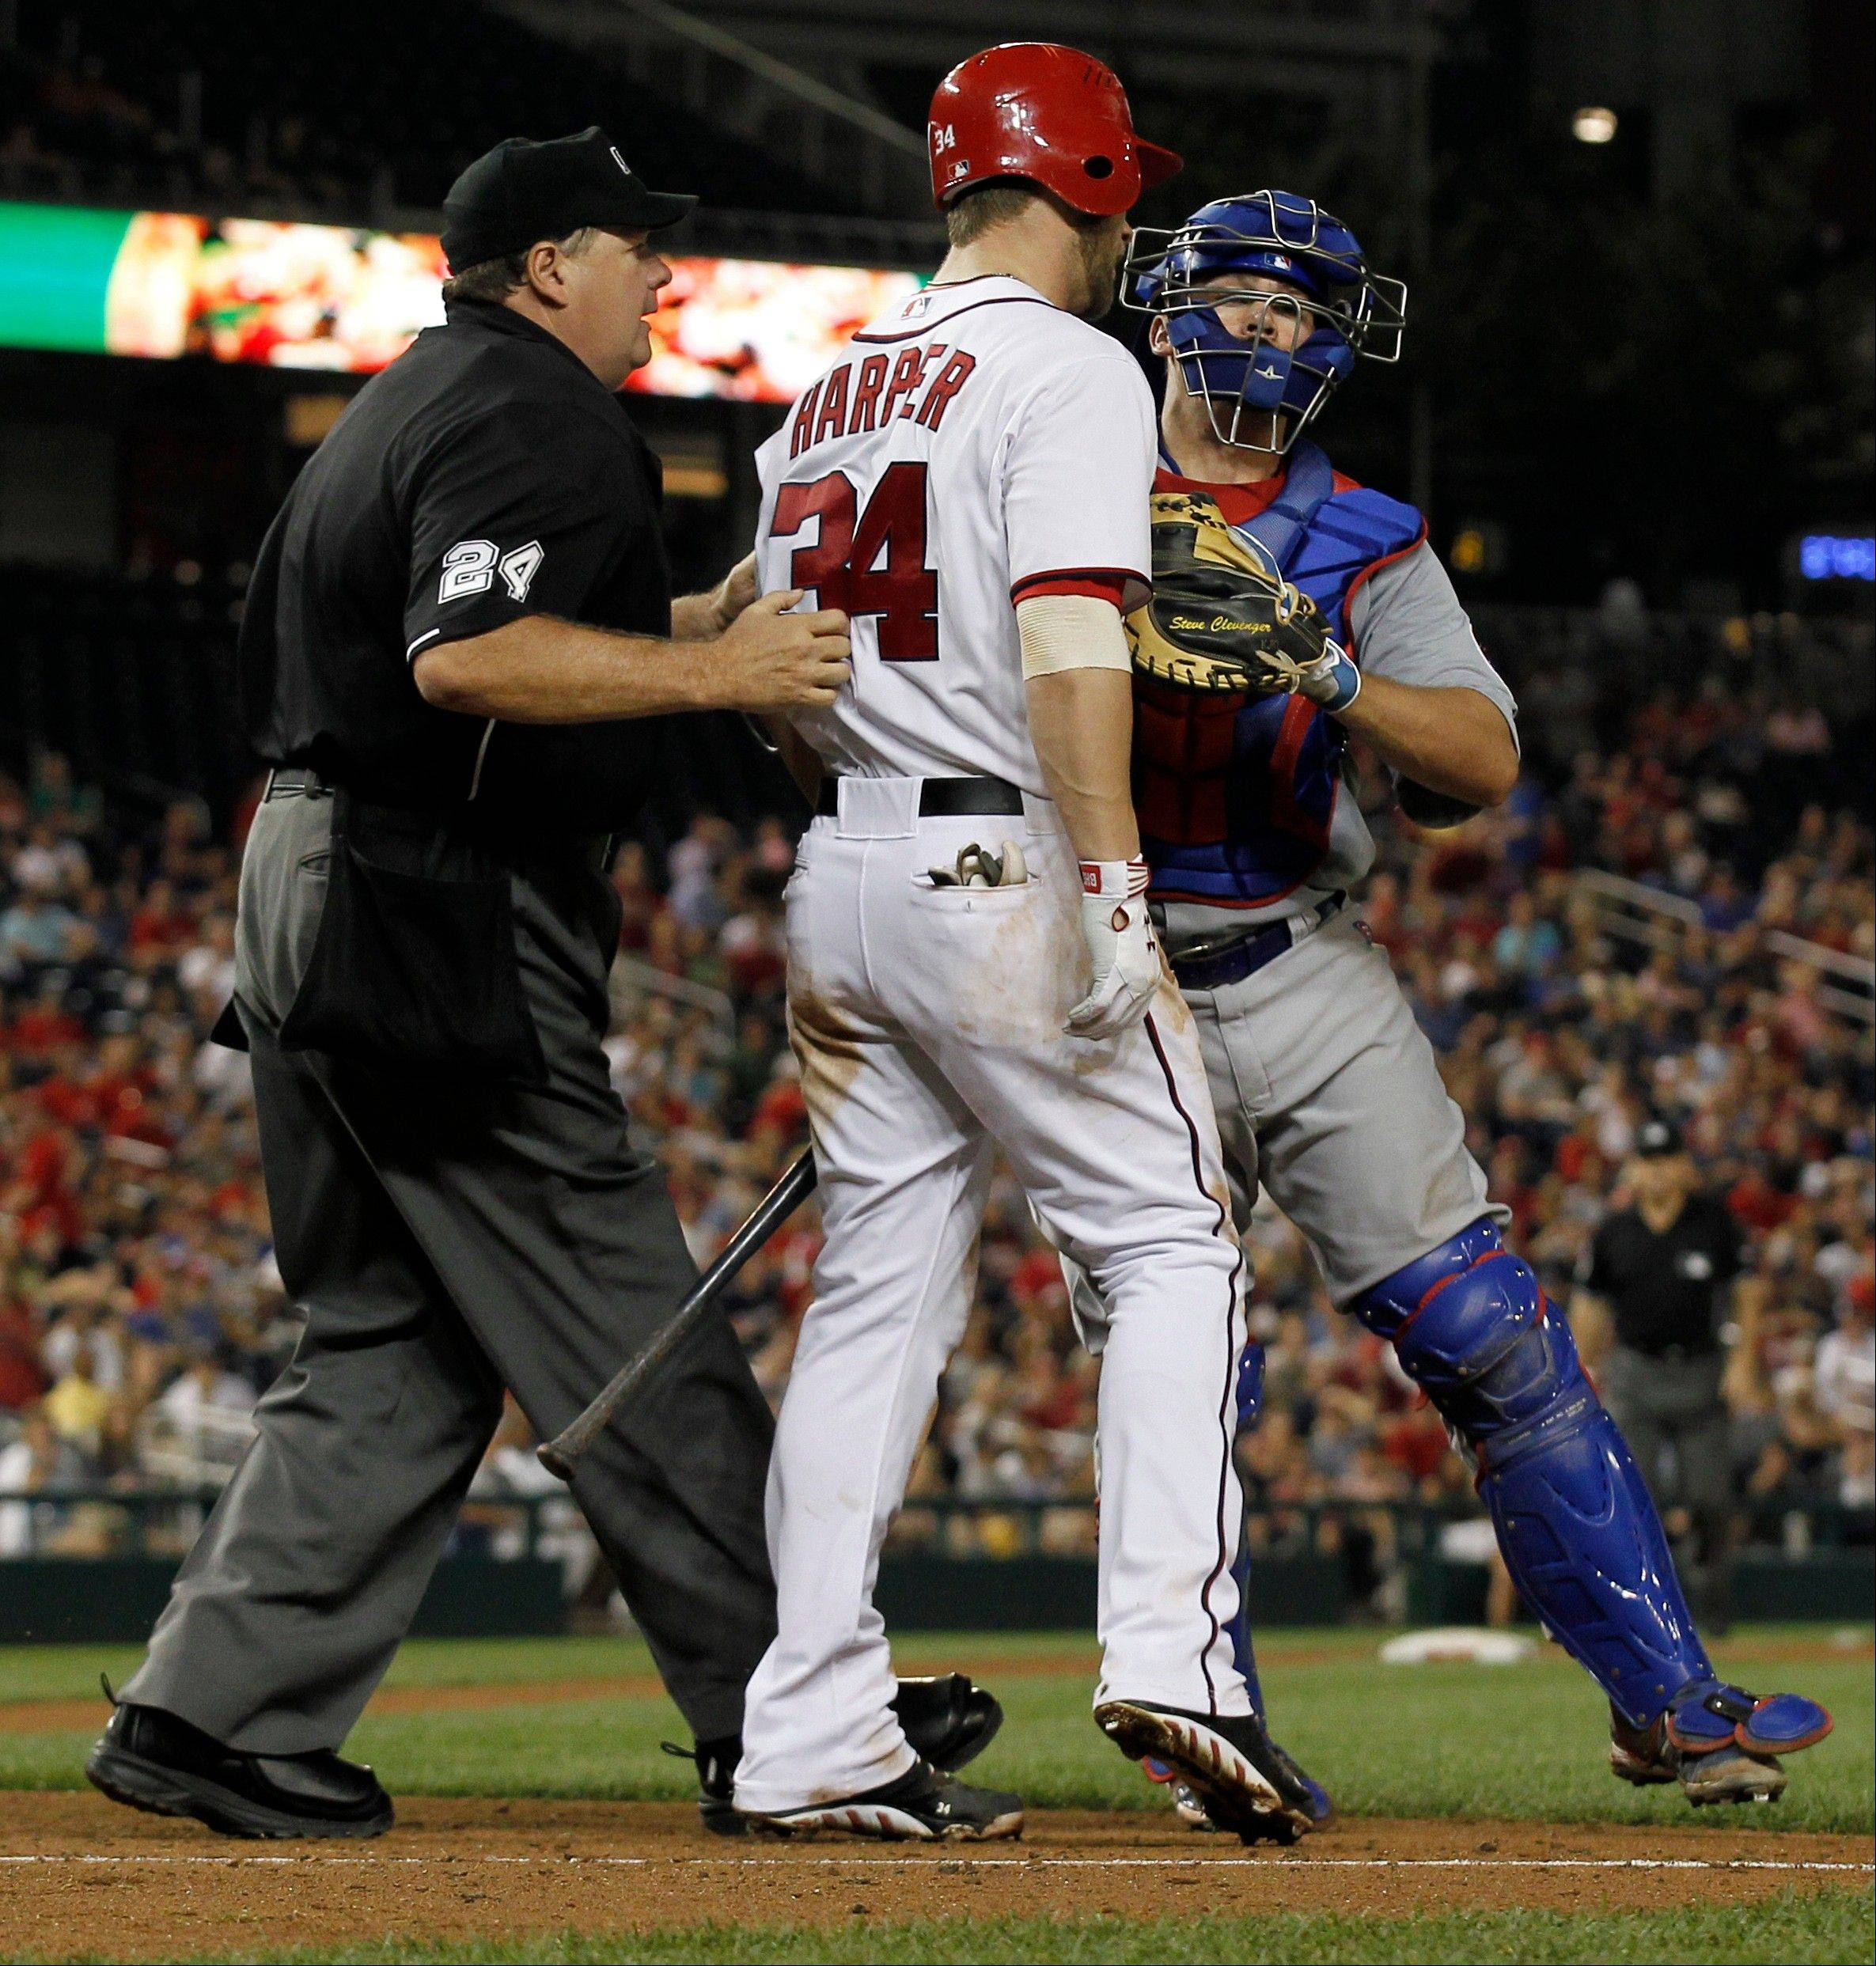 The Nationals' batter Bryce Harper (34) is restrained by home plate umpire Jerry Lane, left, and Cubs catcher Steve Clevenger after an inside pitch during the sixth inning Thursday in Washington. The benches and bullpens emptied onto the field.